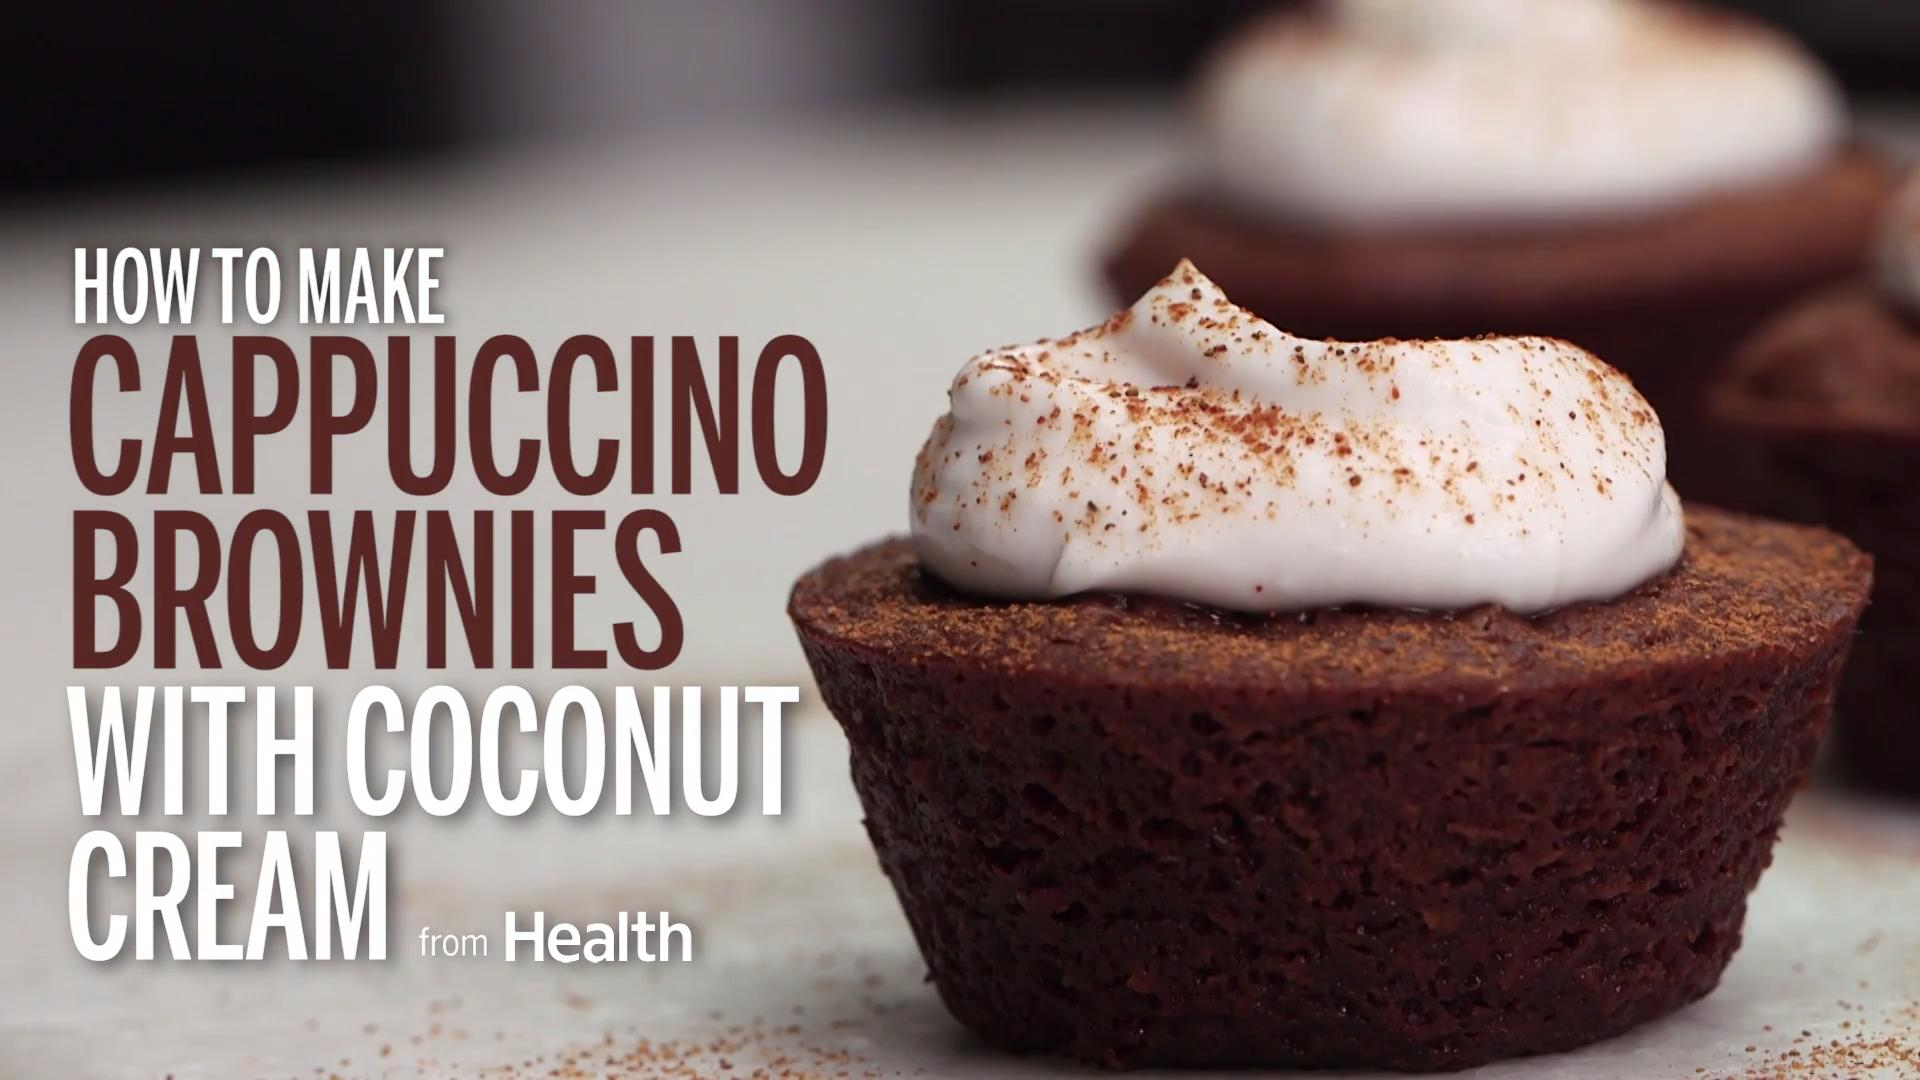 Cappuccino Brownies With Coconut Cream